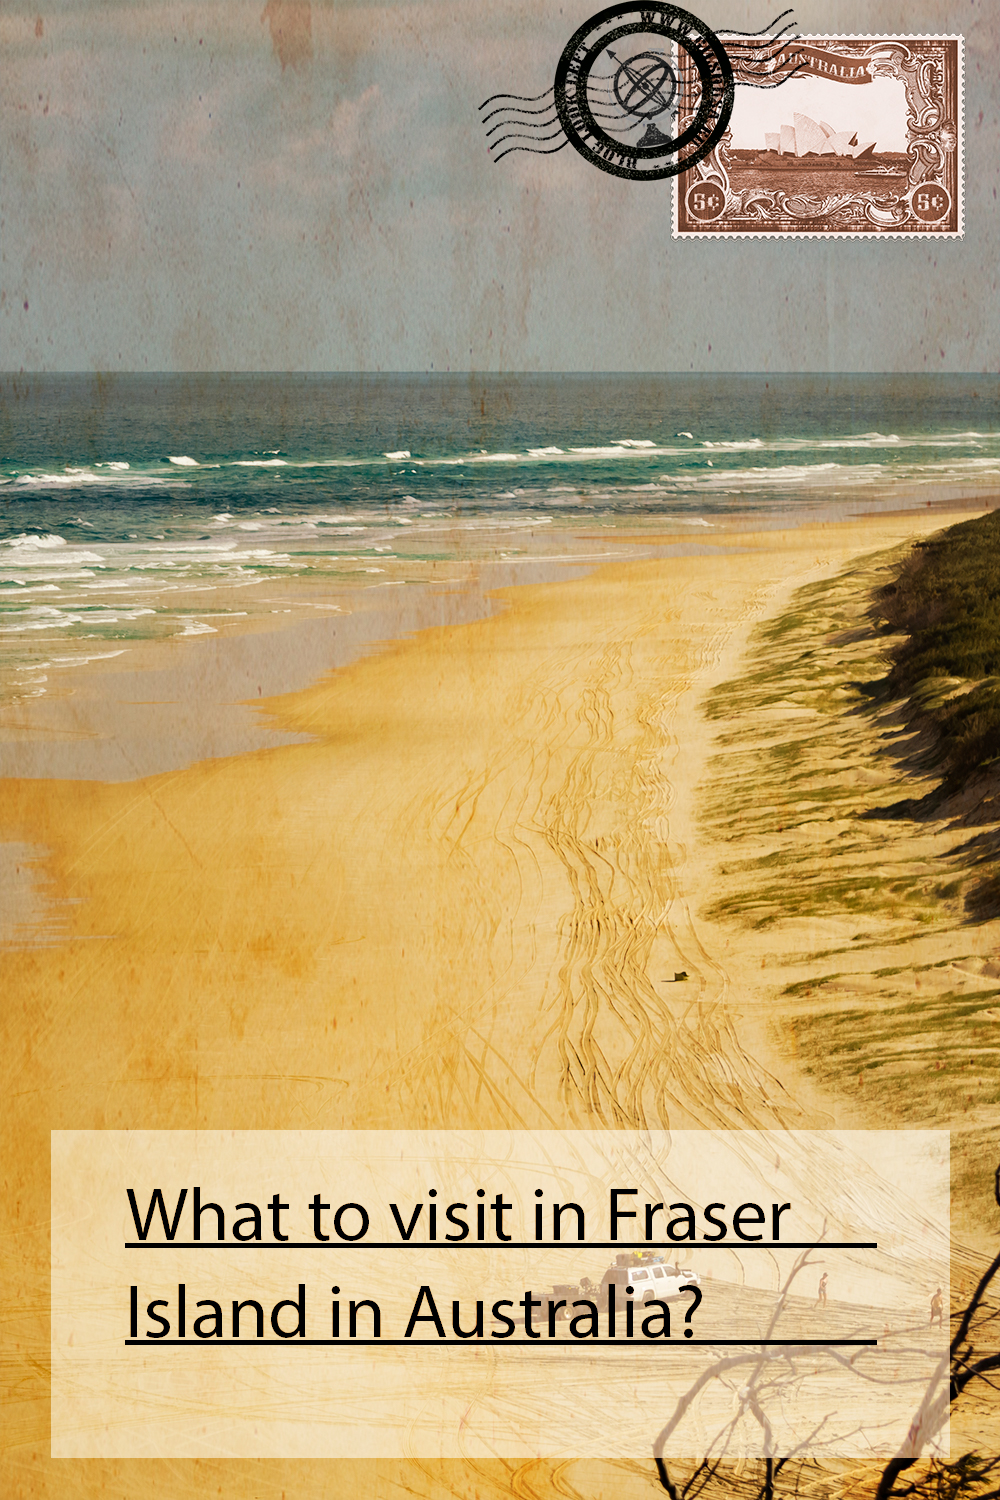 What to visit in Fraser Island in Australia?